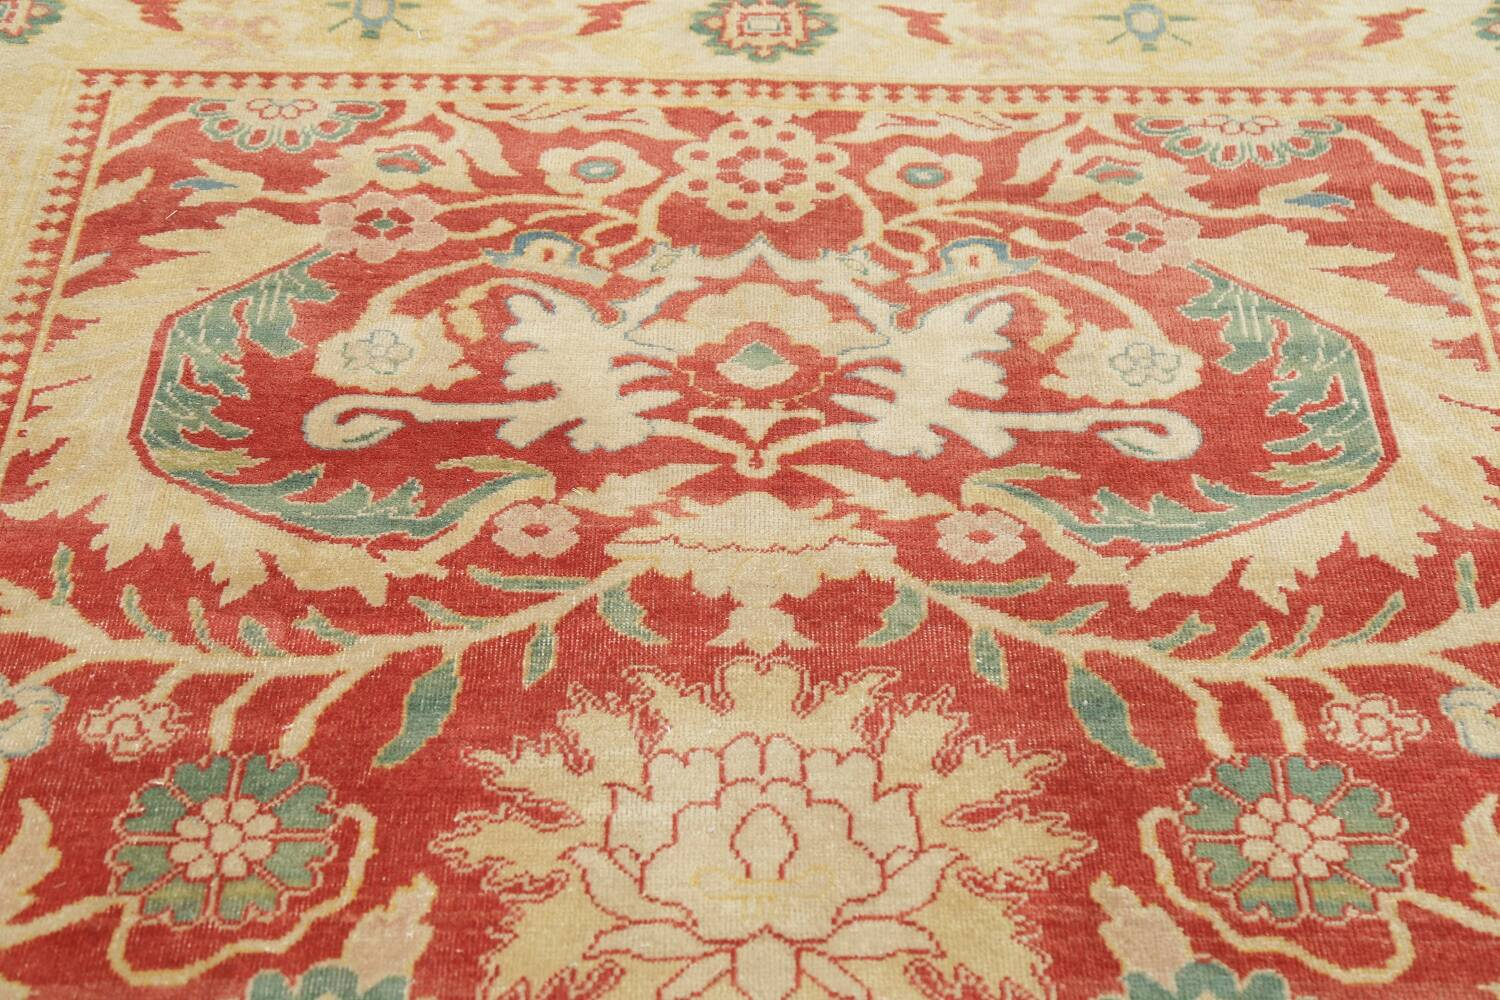 Floral Red Oushak Egyptian Area Rug 6x9 image 12